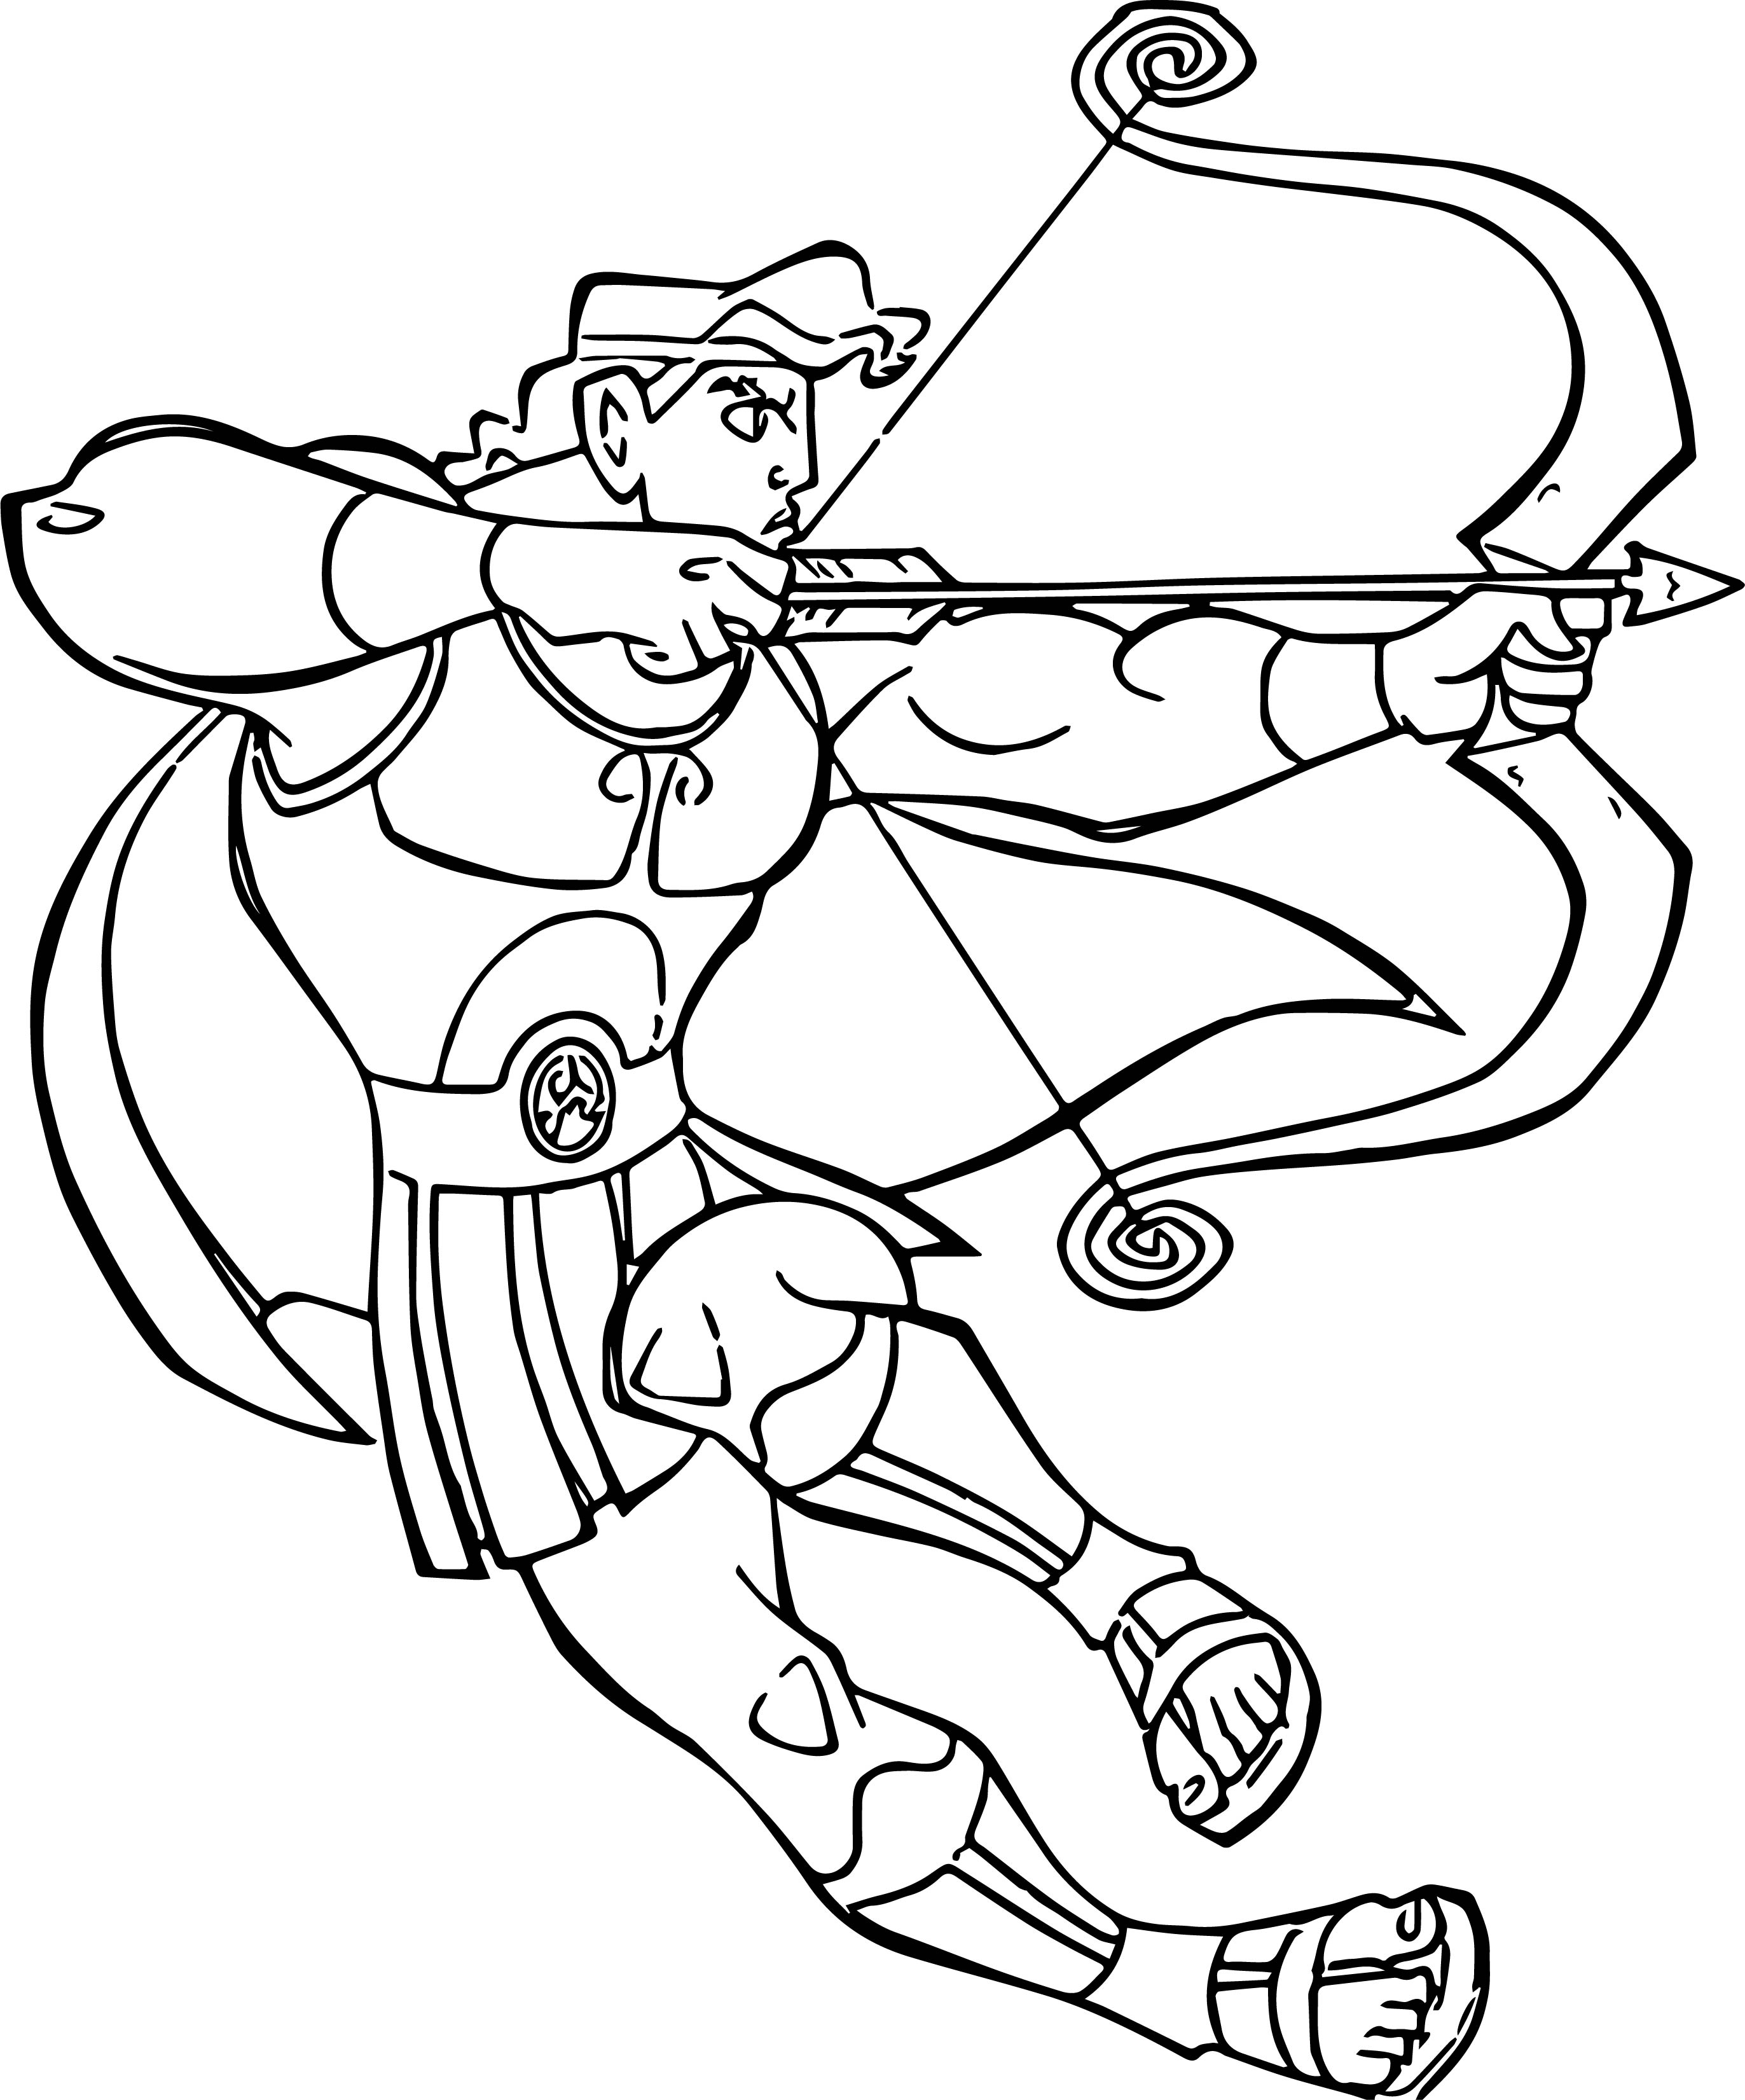 Hercules Arrow Bow Coloring Pages